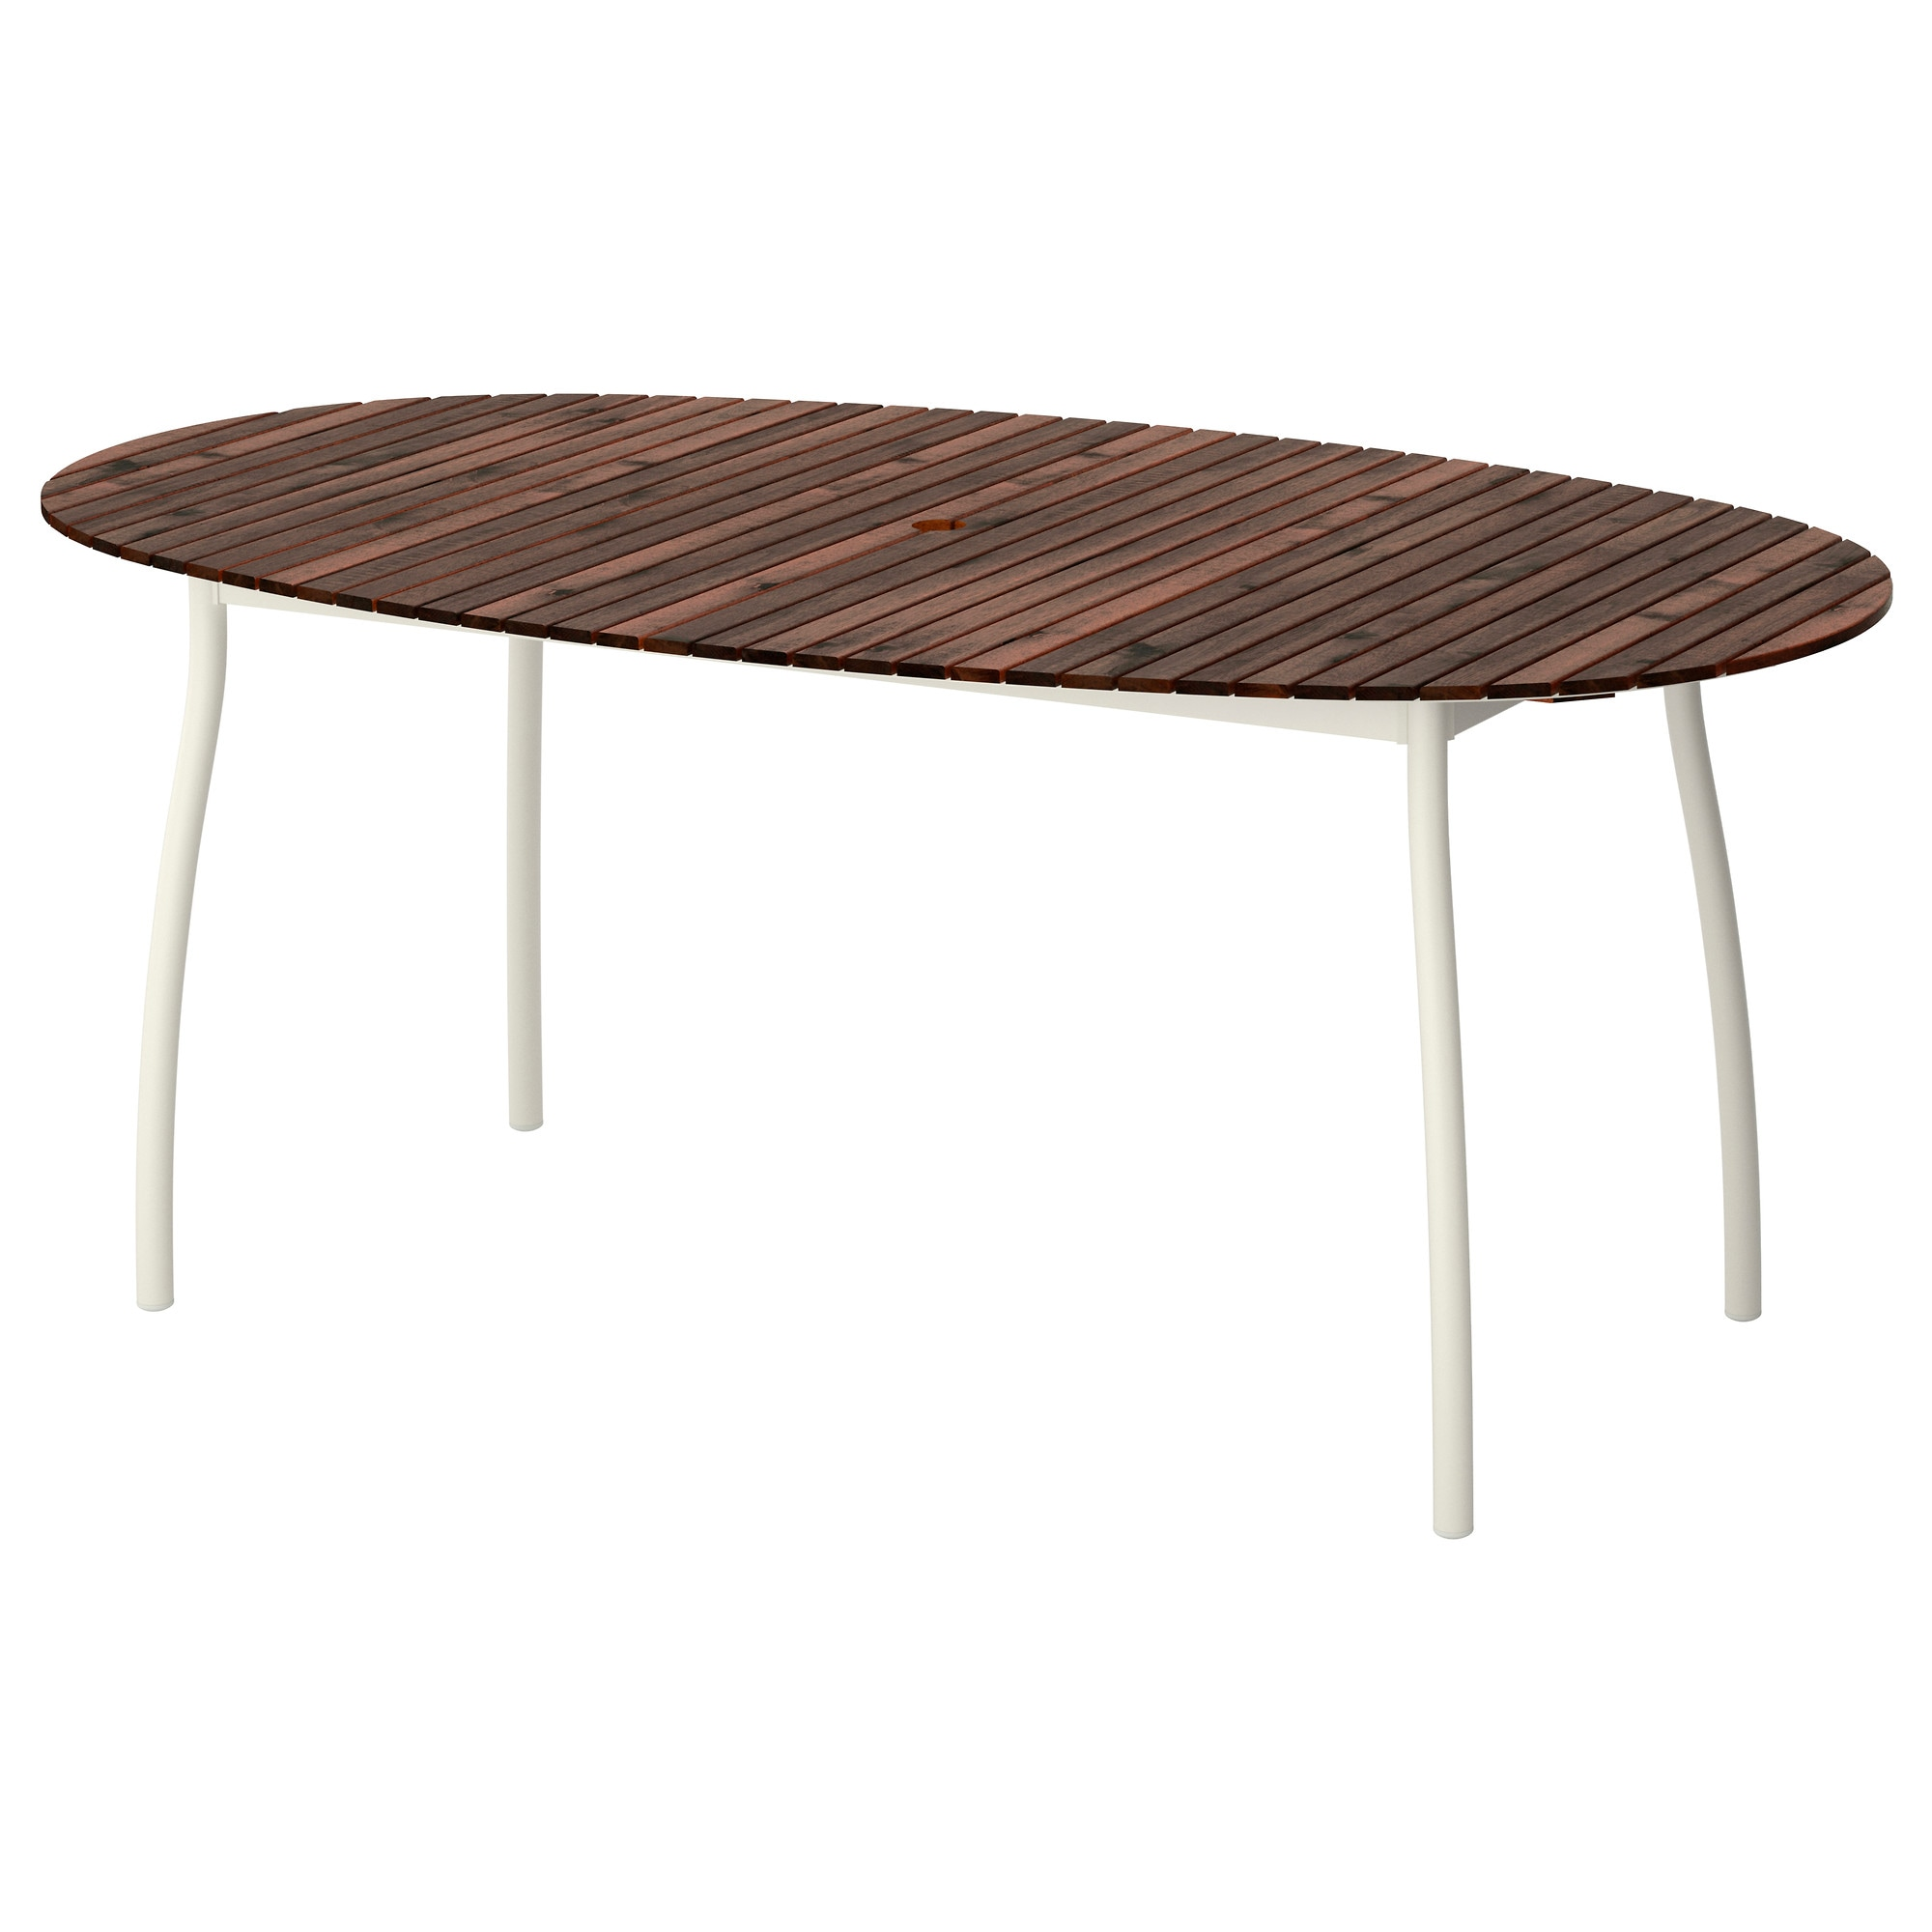 VINDALS– Table outdoor IKEA